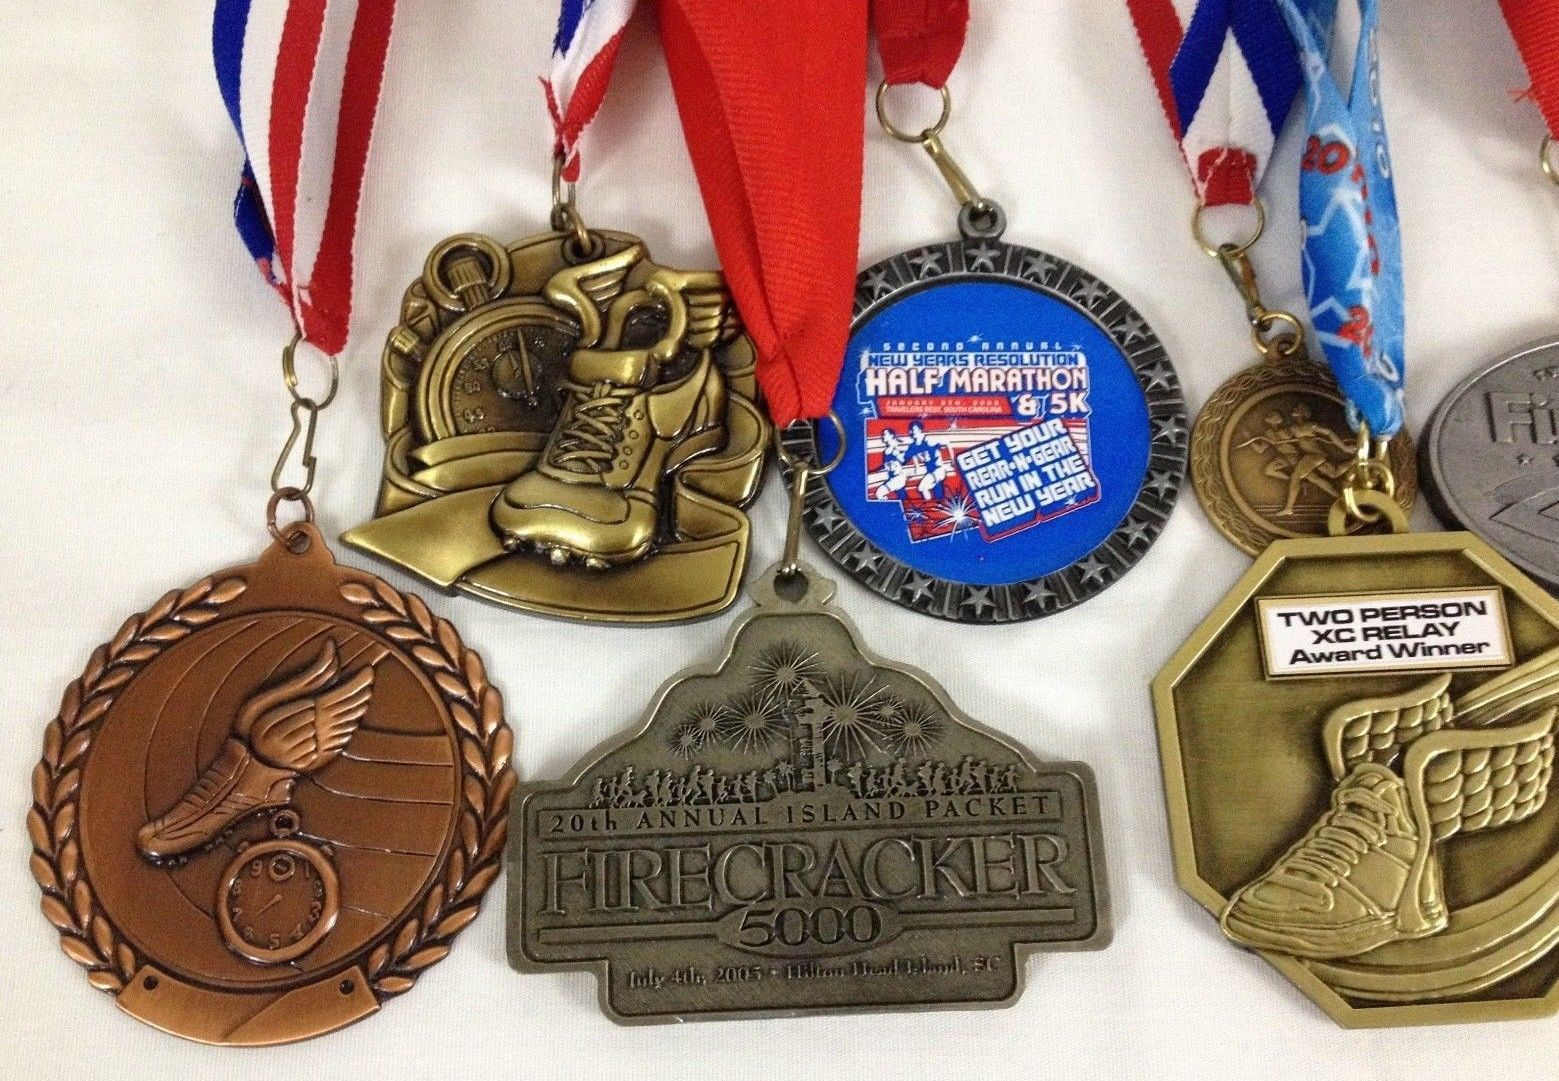 Lot of 14 Running Race Medals Medallions Awards From Various Events image 2